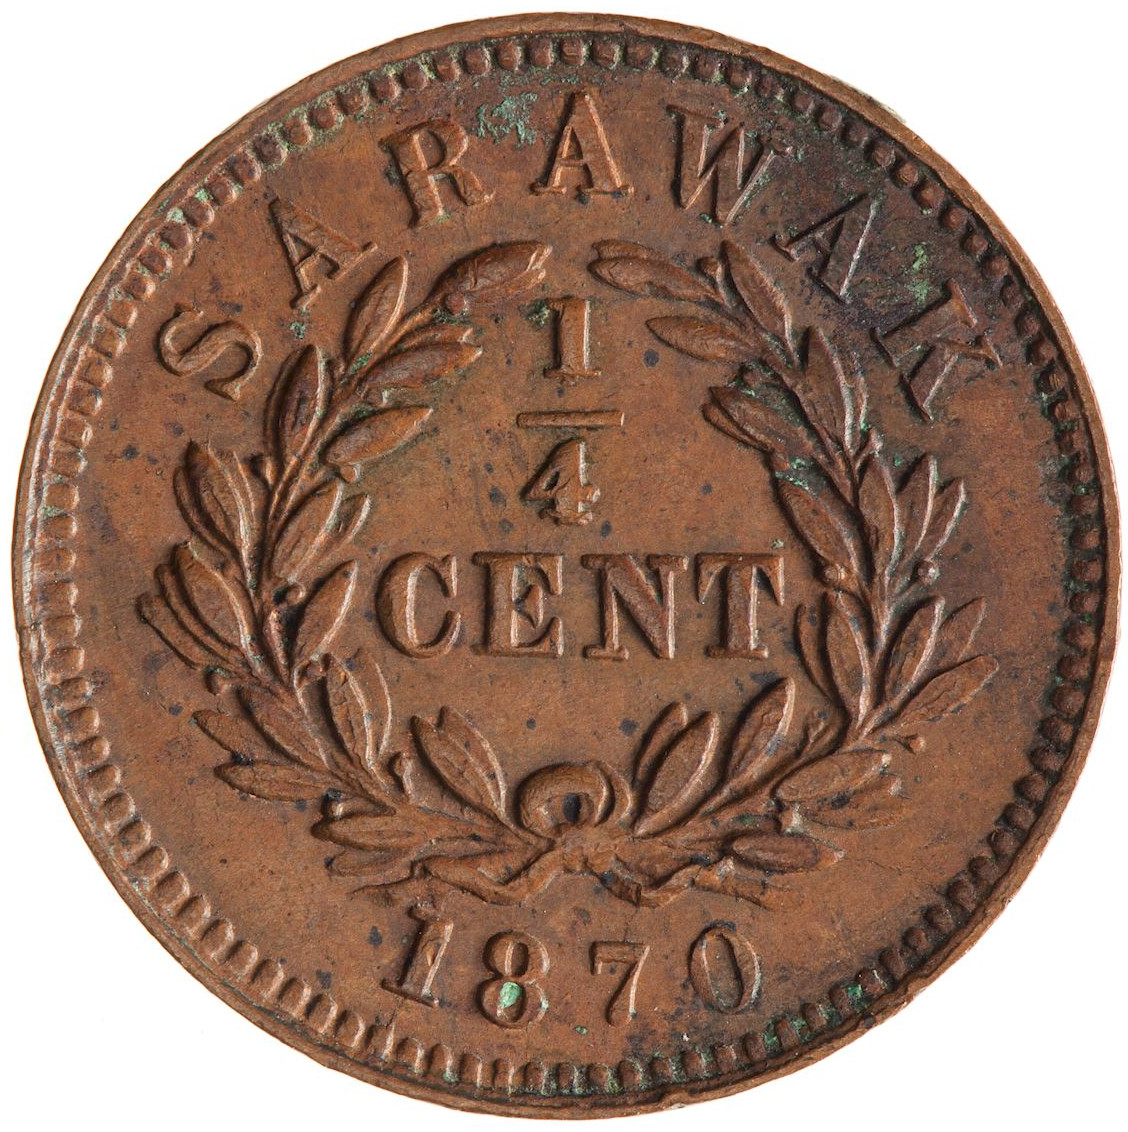 Quarter Cent 1870: Photo Coin - 1/4 Cent, Sarawak, 1870